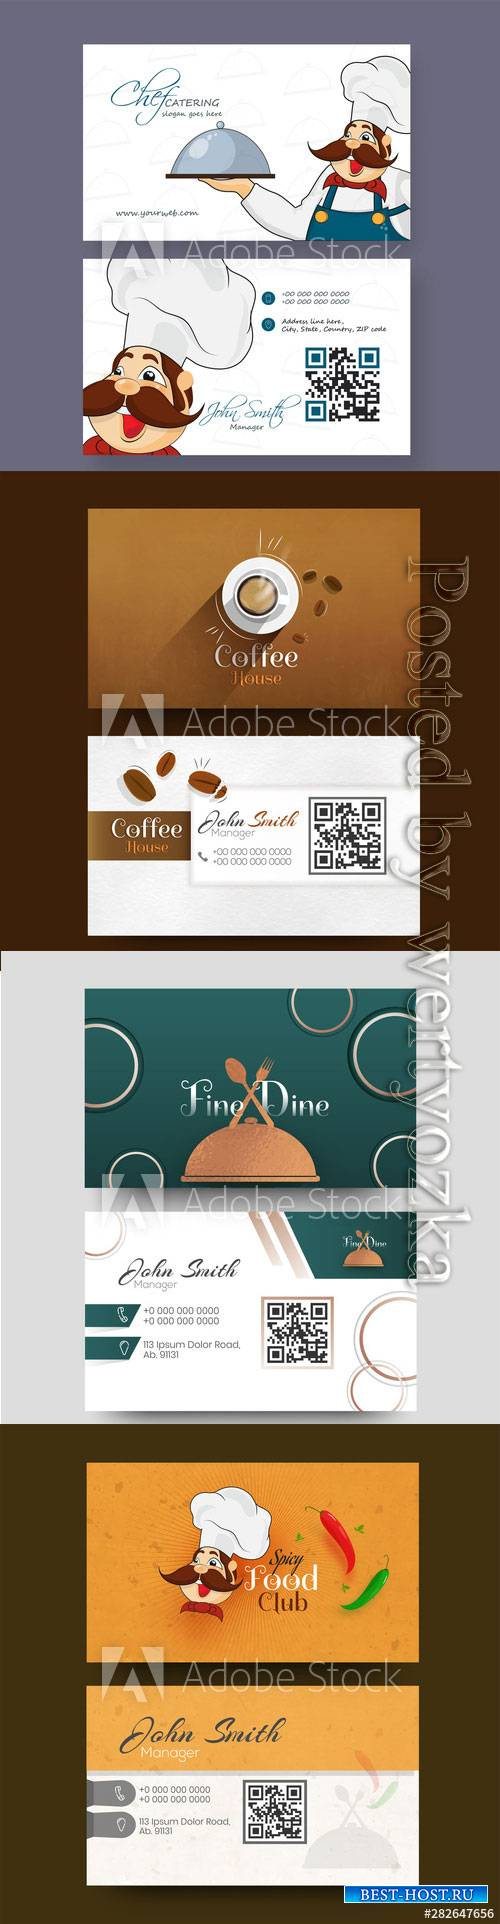 Food Club business card or visiting card design